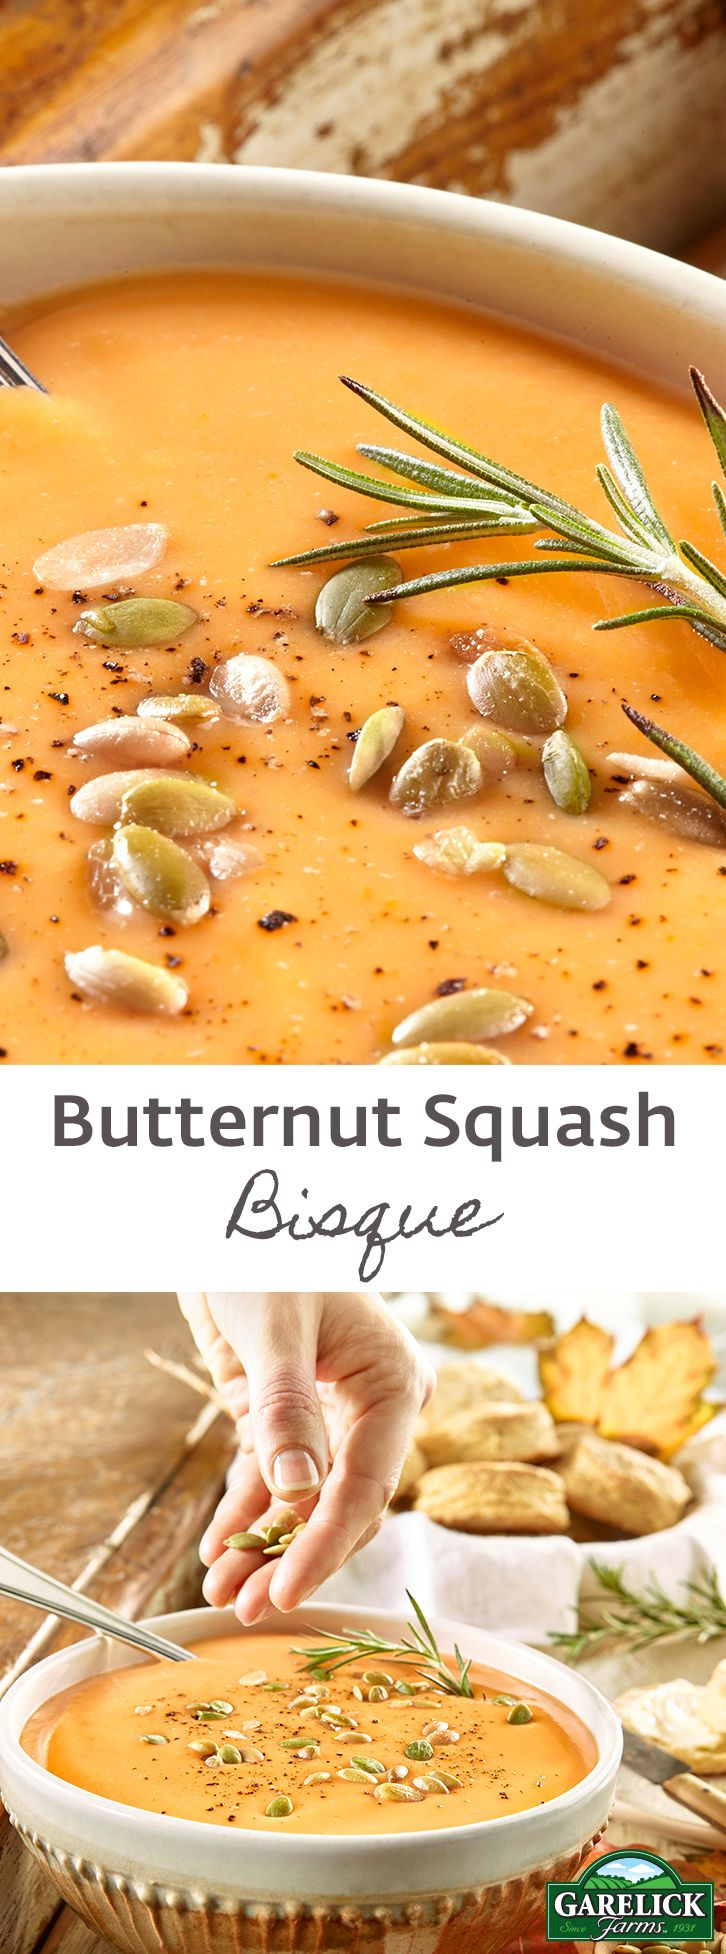 Low in fat but high in fiber, potassium and Vitamin A. This rich and hearty soup is made extra creamy with potatoes and whole milk.